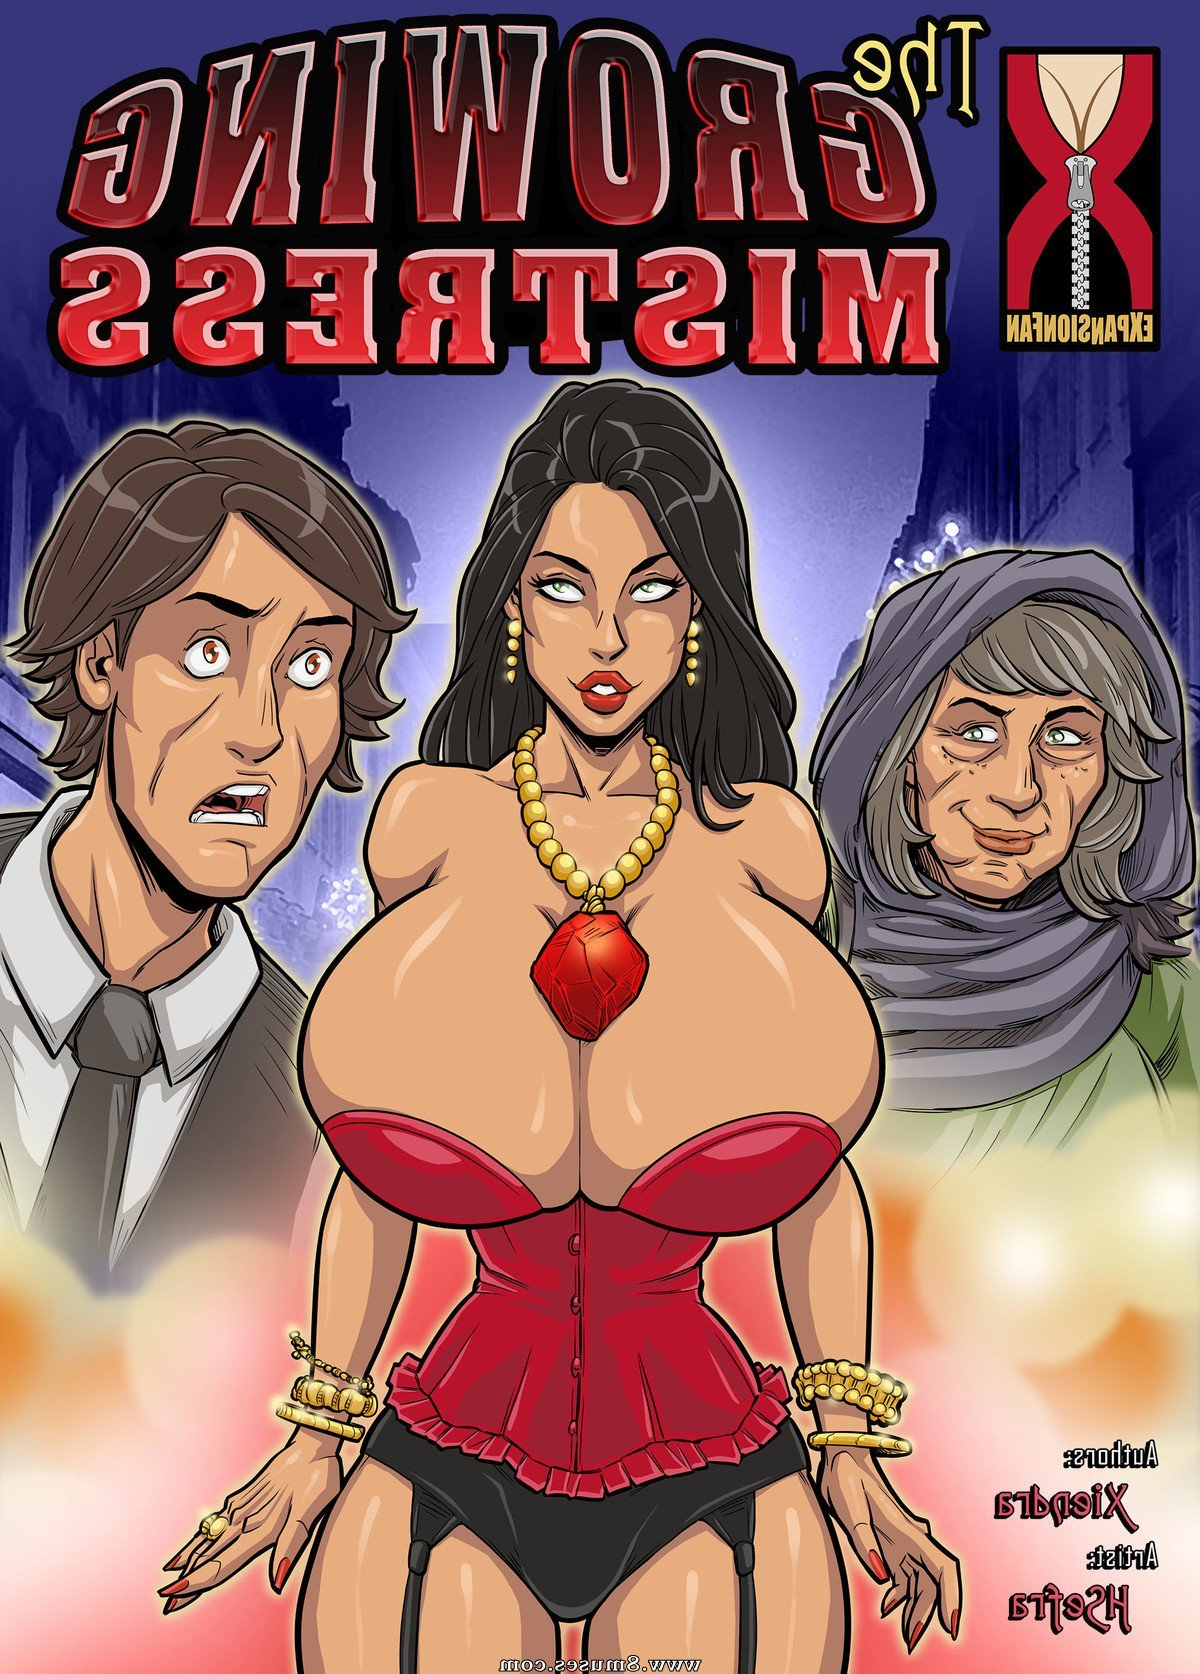 Expansionfan-Comics/The-Growing-Mistress/Issue-1 The_Growing_Mistress_-_Issue_1.jpg